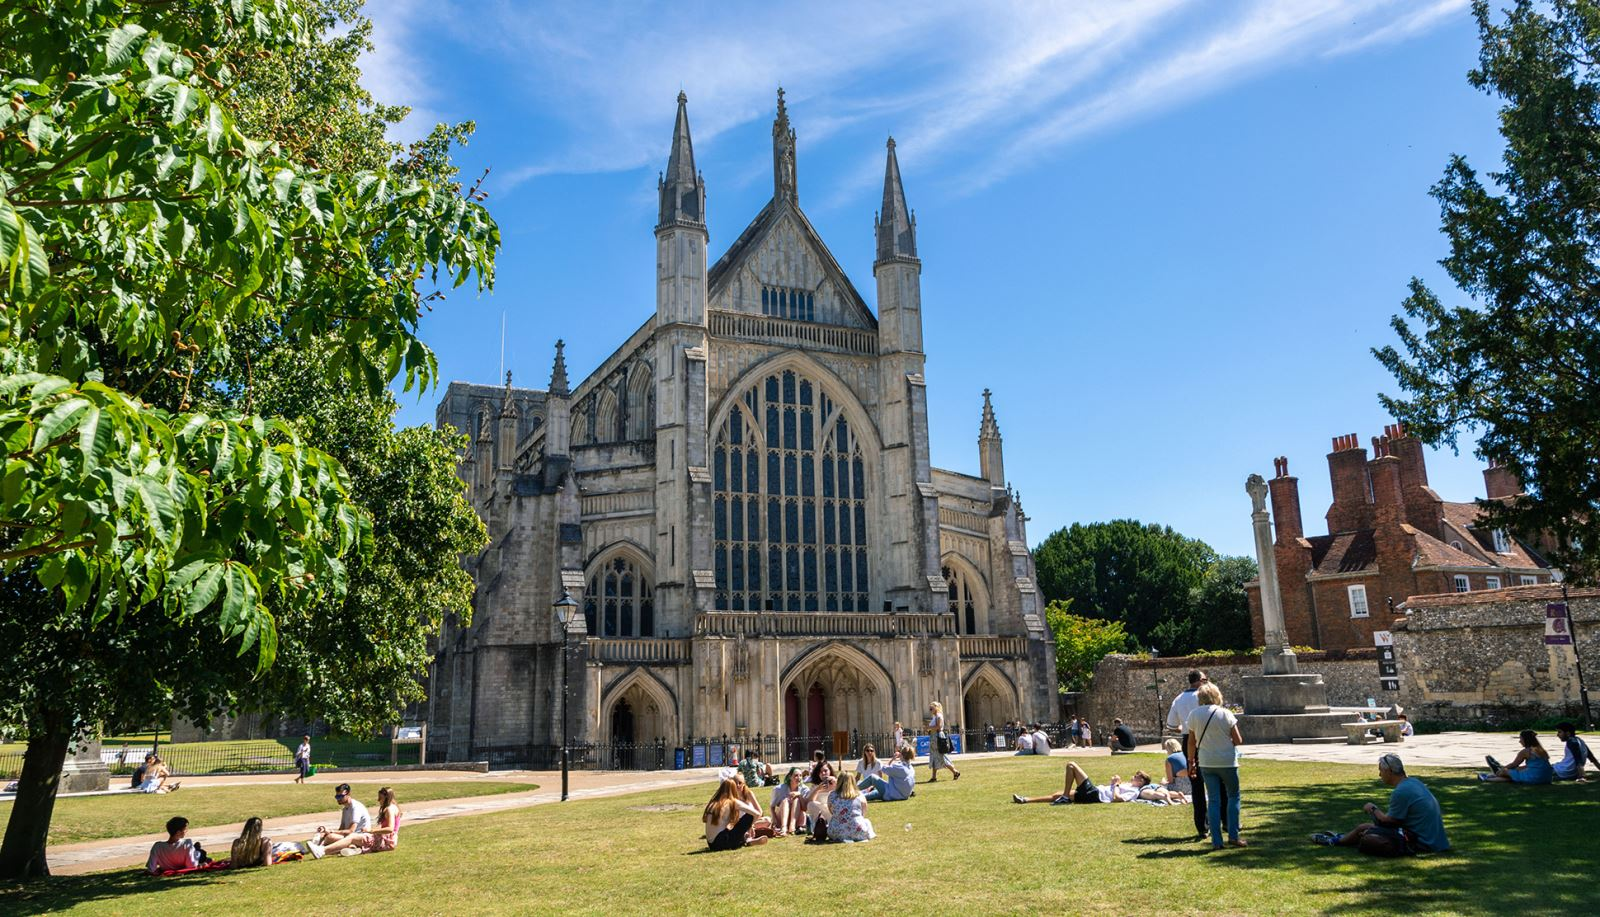 Winchester Cathedral in the city of Winchester